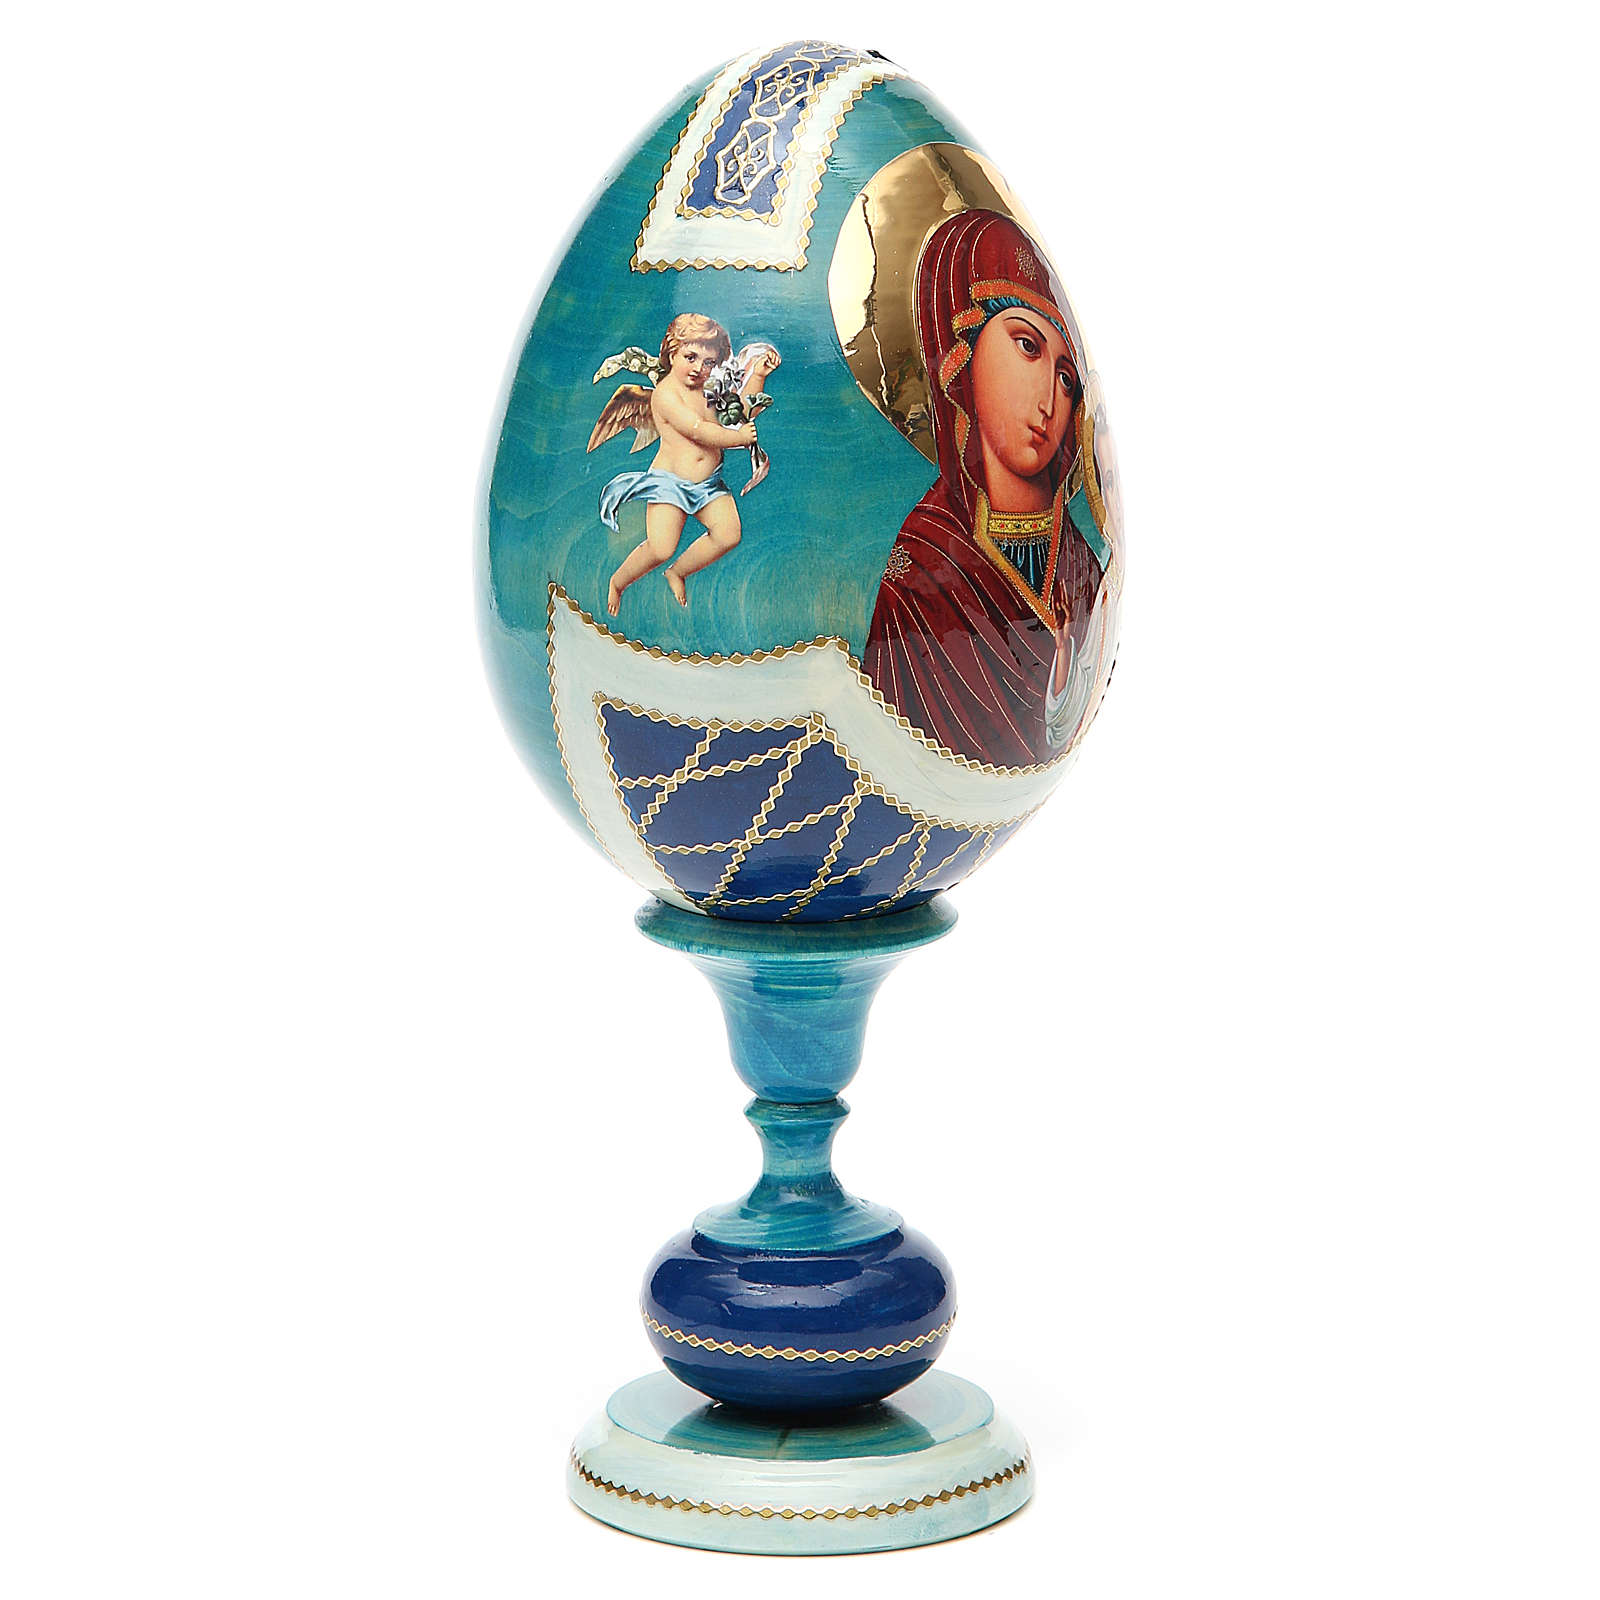 Russian Egg Our Lady of Kazan découpage, Fabergè style 20cm 4